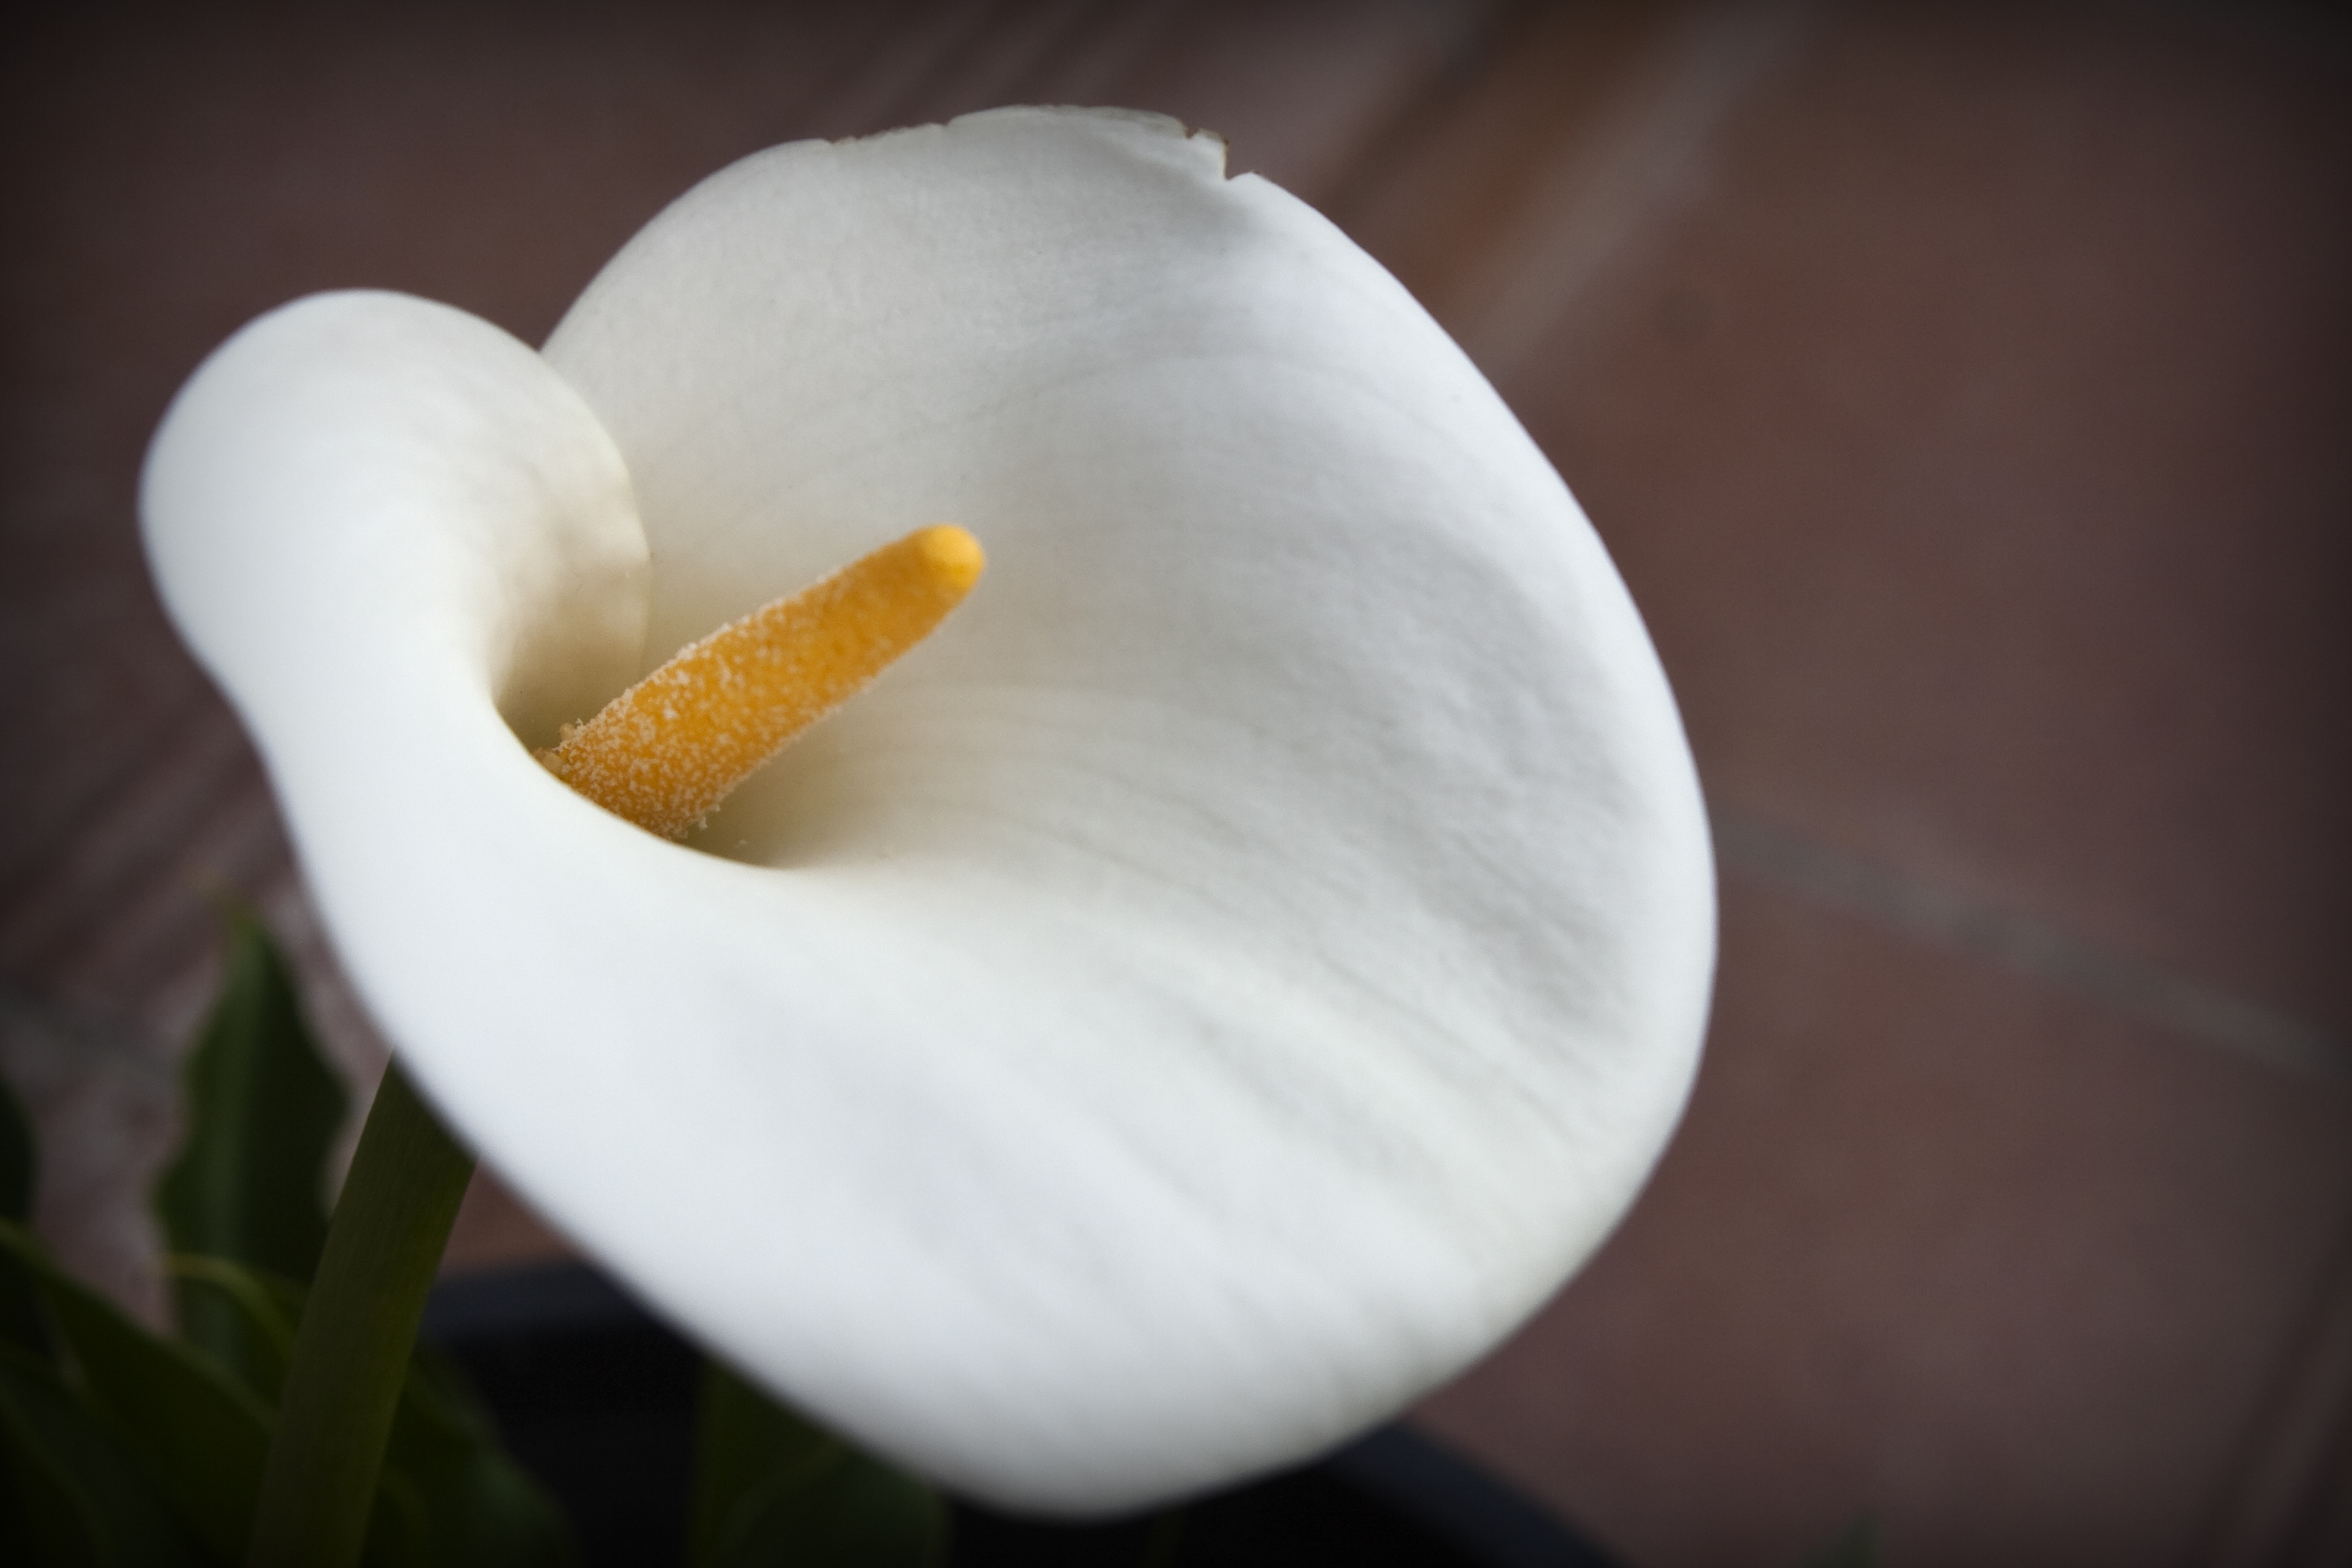 White Flower With Yellow Pistil Close Up Free Image